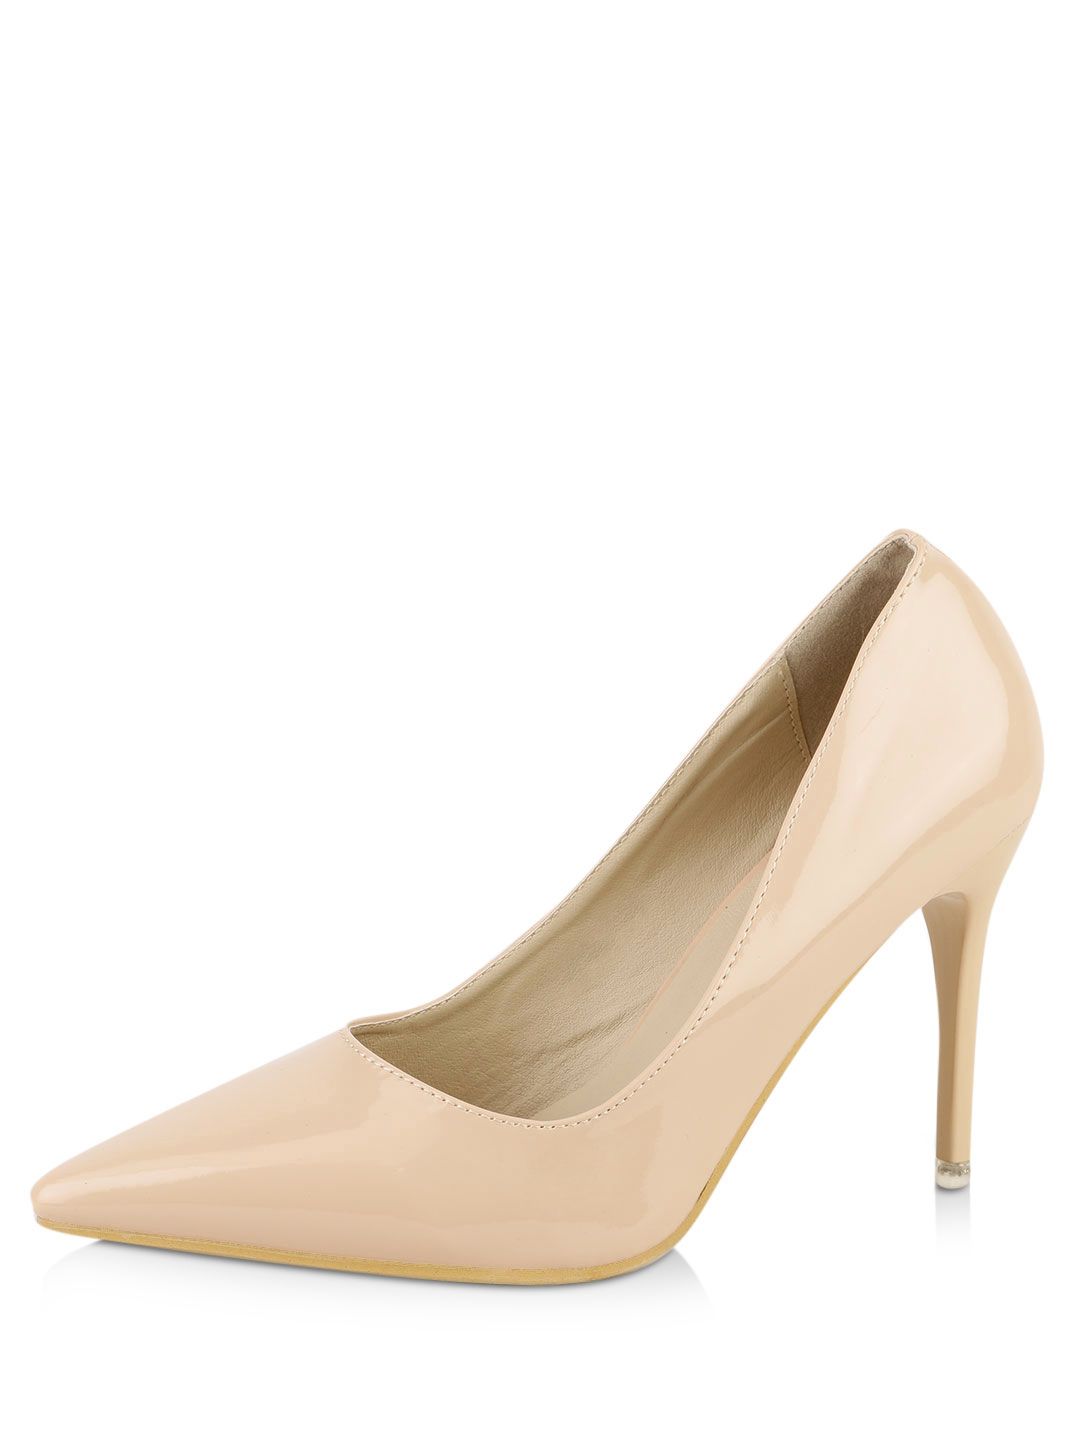 My Foot Couture Nude Heeled Sandals 1